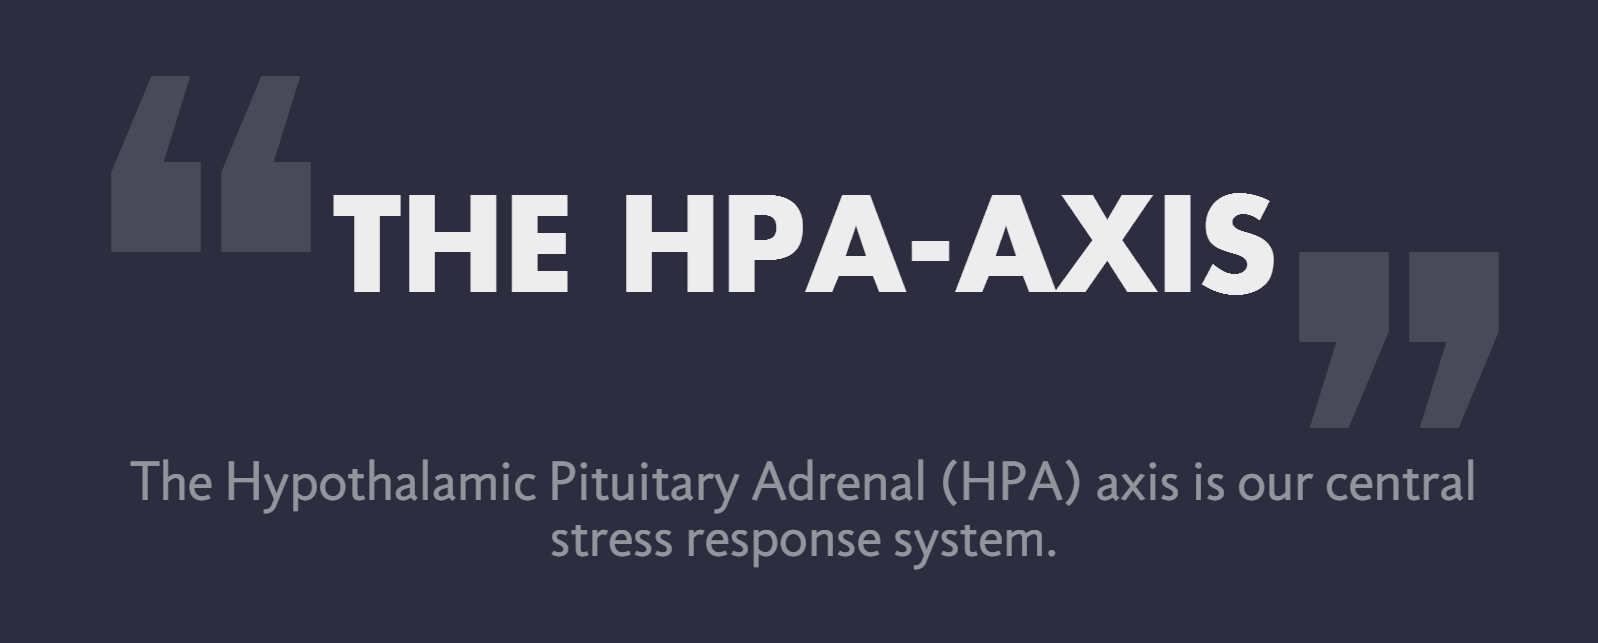 hpa-axis, hypothalamus, hypothalamus function, what is hypothalamus, pituitary gland, pituitary gland function, adrenal glands, adrenal gland function, stressors, The HPA-Axis and Stress, Hypothalamic Pituitary Adrenal Axis, Flow State, neurochemicals of flow state, excess cortisol